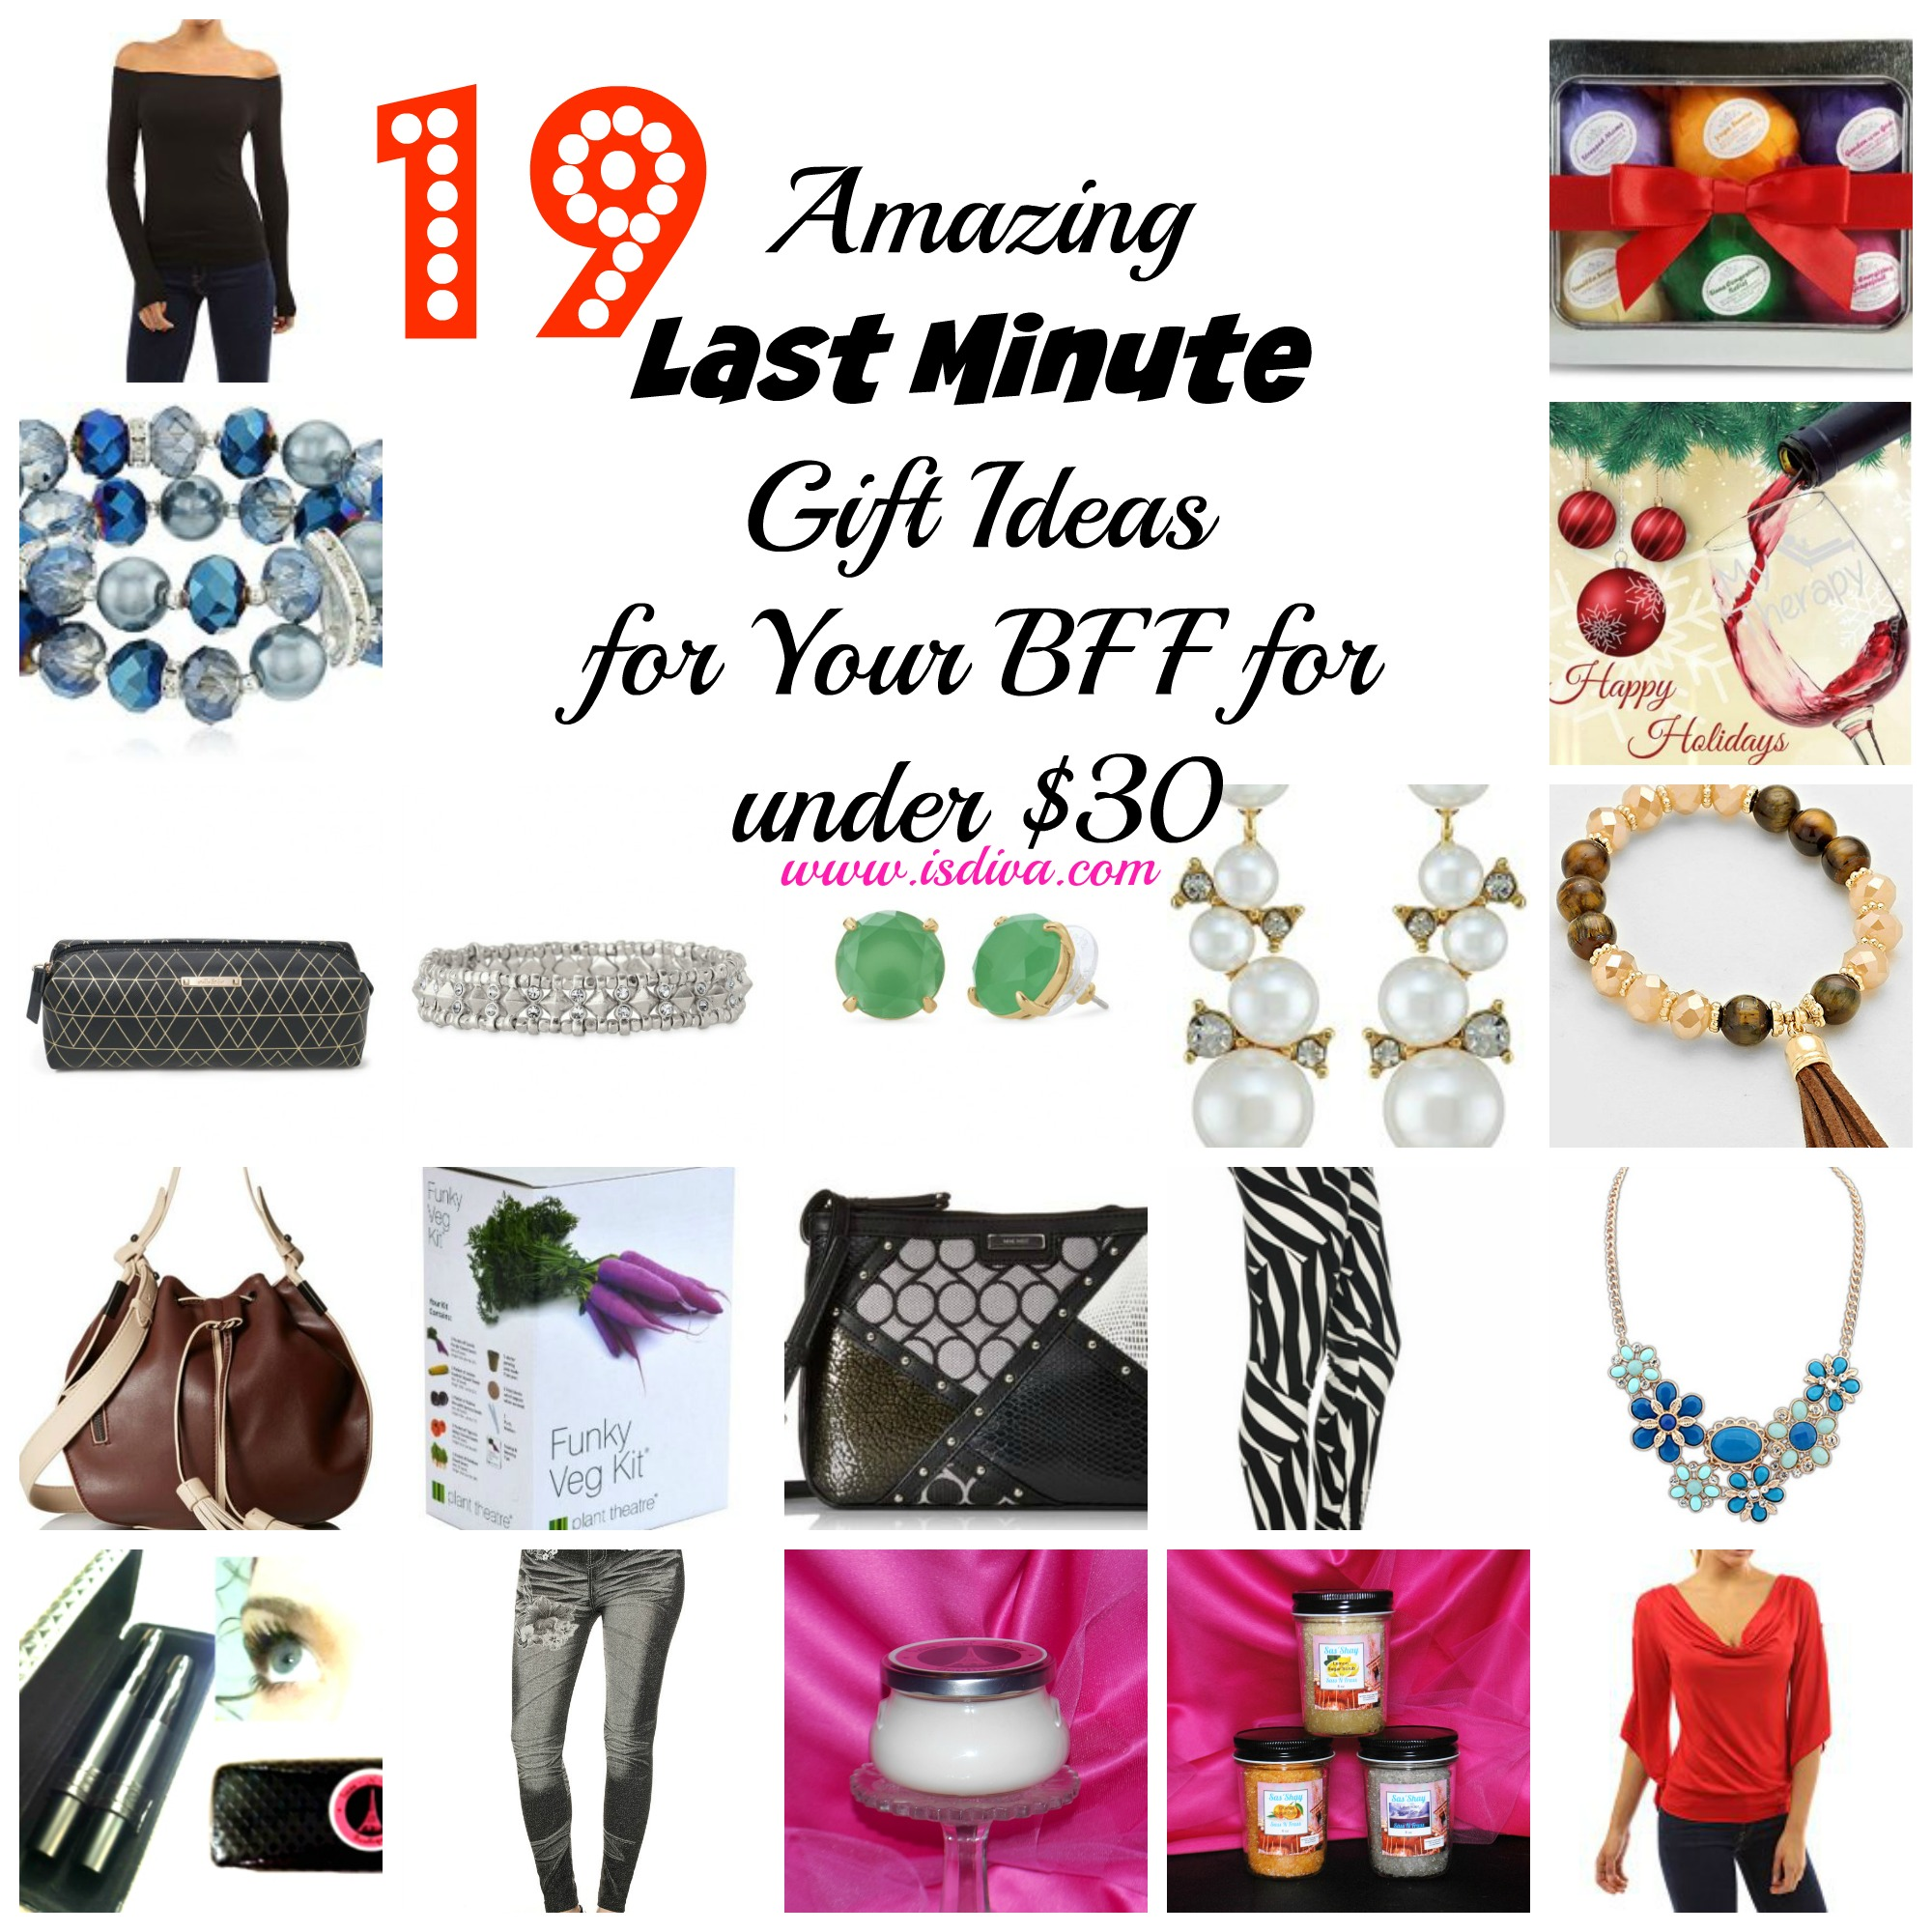 Do You Need Some Last Minute Gift Ideas For Your Best